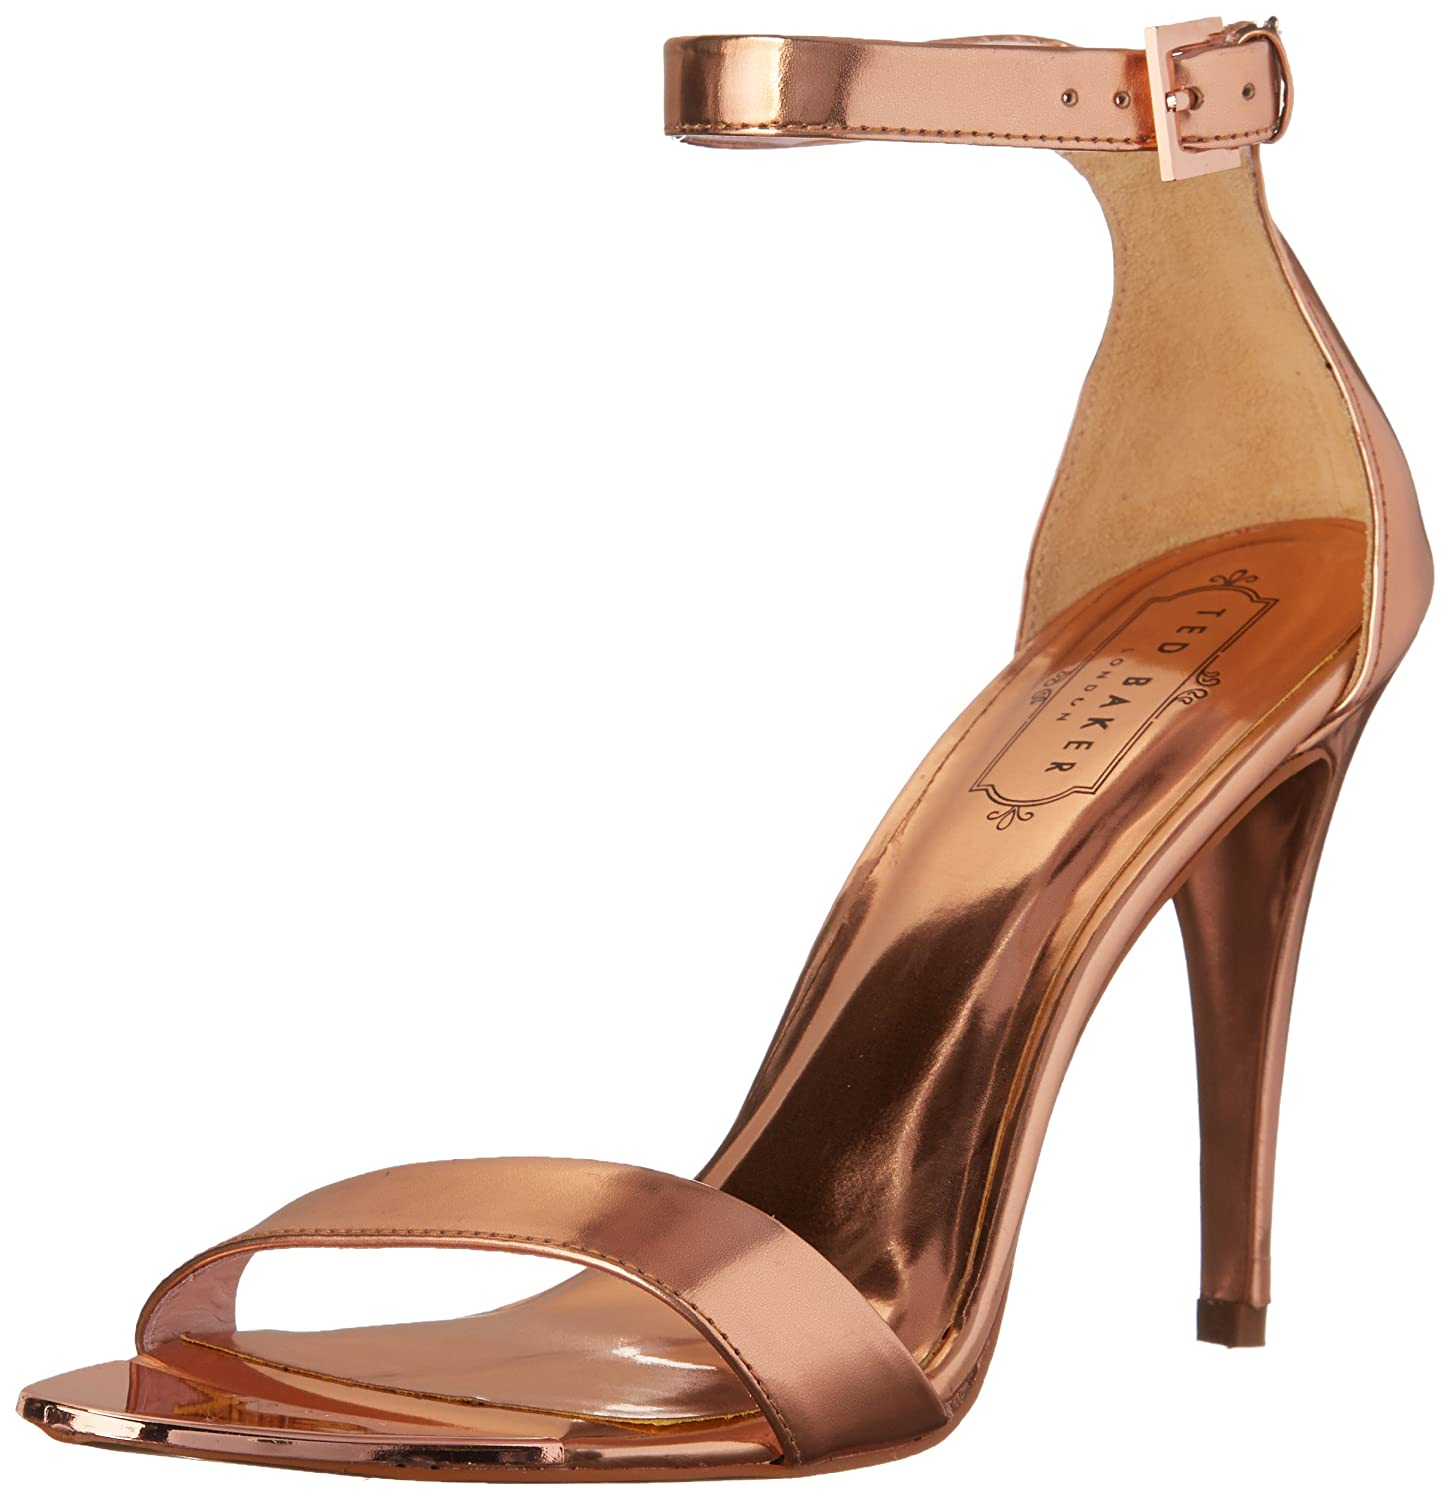 950d43f6a02d9 Ted Baker Women's Juliennas Dress Sandal